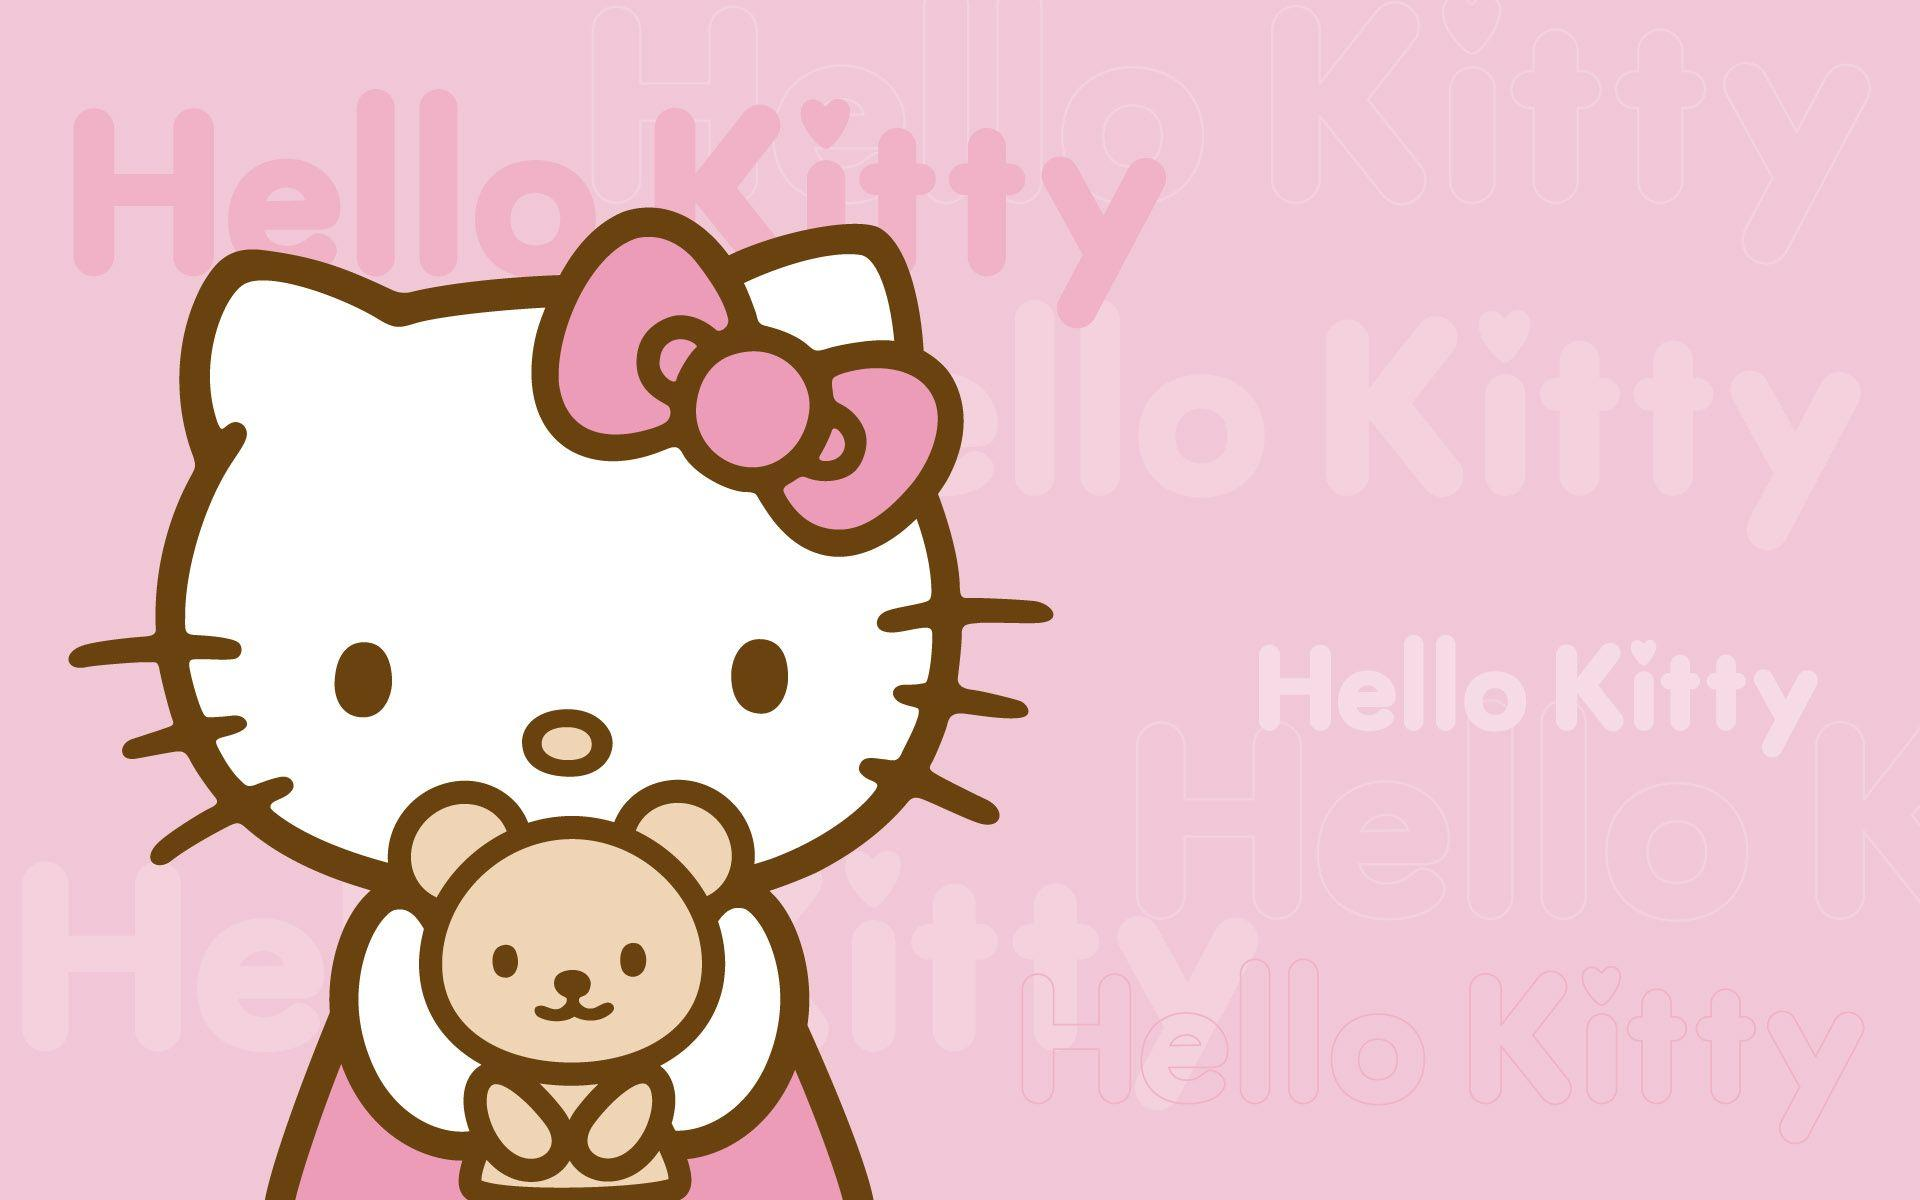 Cute wallpapers of hello kitty wallpaper cave cute anime hello kitty best quality hd wallpaper 3232 cute voltagebd Image collections